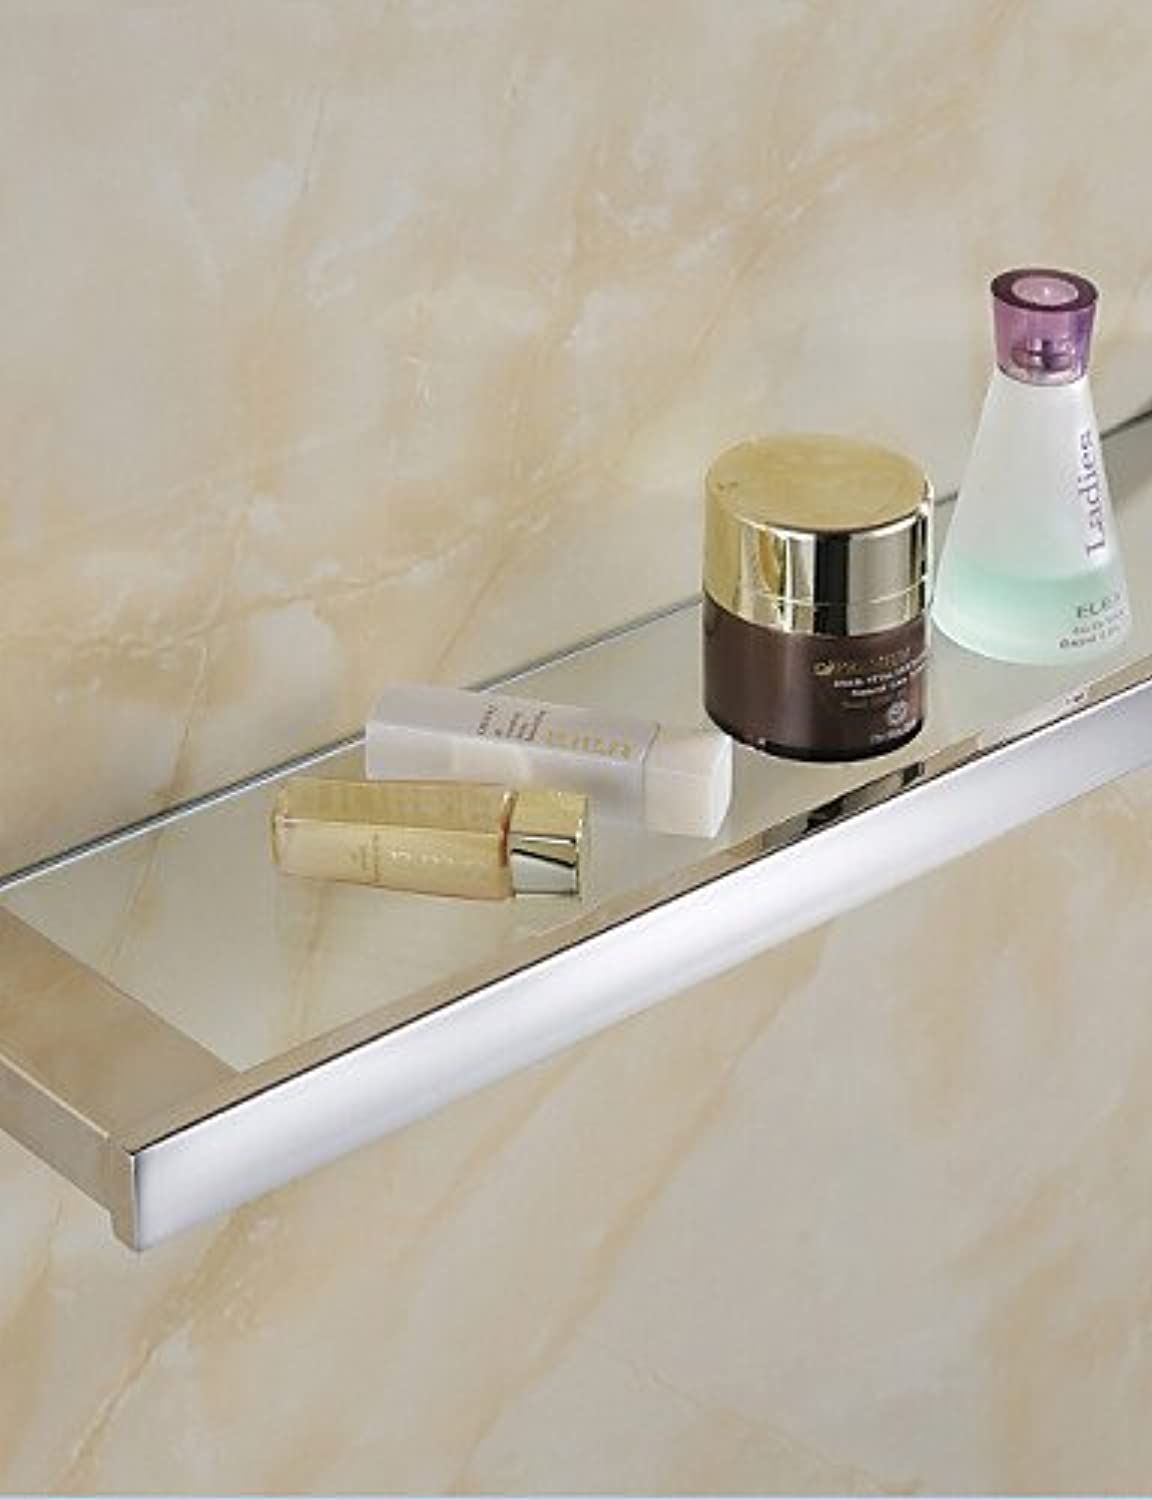 KHSKX Bathroom Shelves,Contemporary Mirror Polished Finish Stainless Steel Material Glass Shelf,Bathroom Accessory